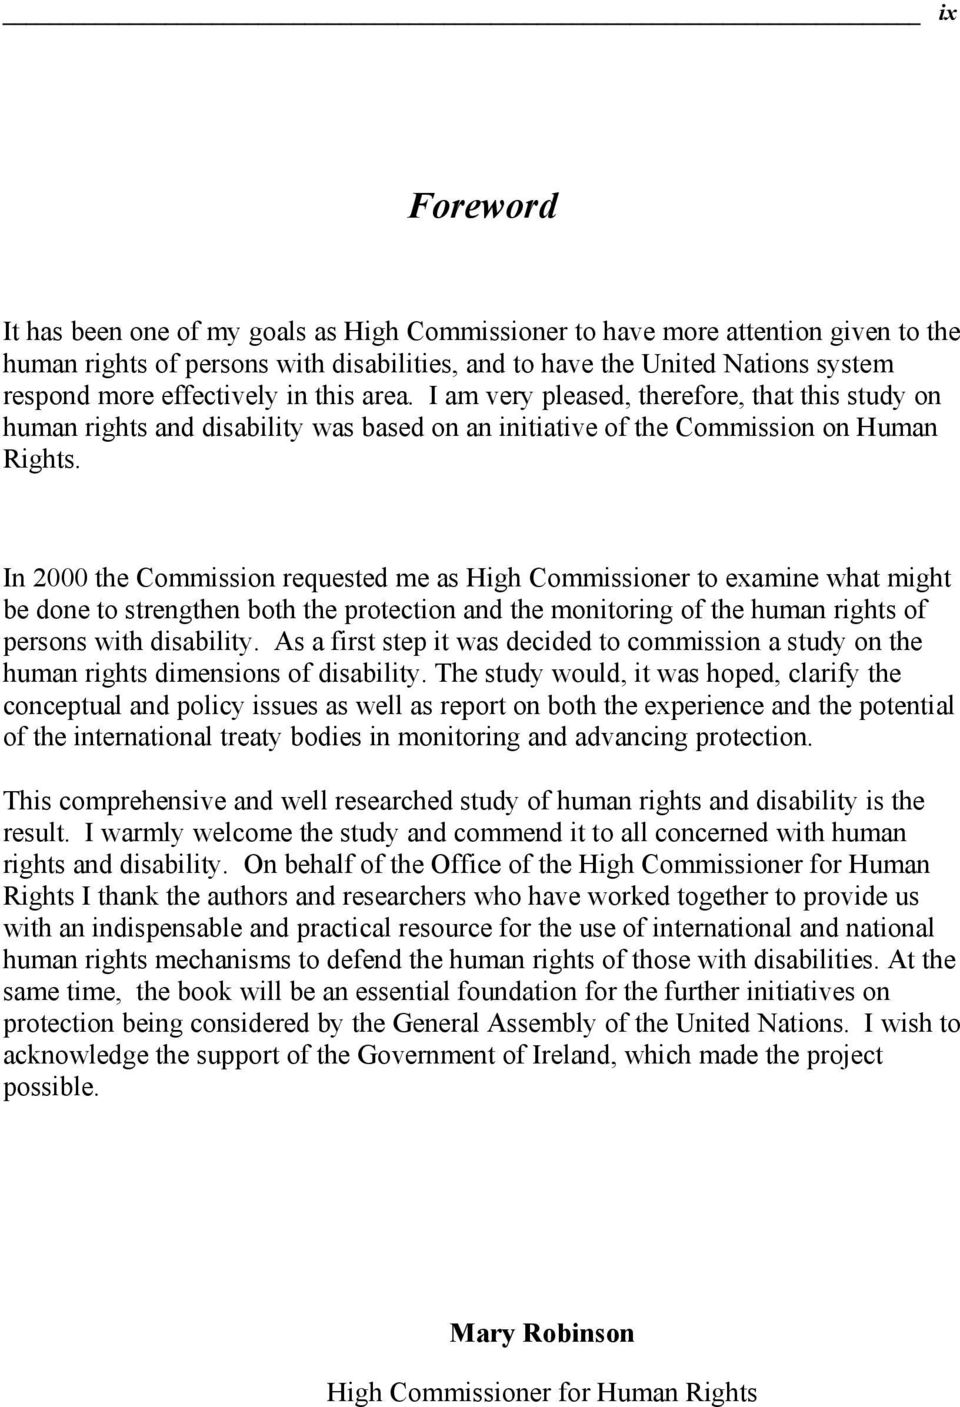 In 2000 the Commission requested me as High Commissioner to examine what might be done to strengthen both the protection and the monitoring of the human rights of persons with disability.